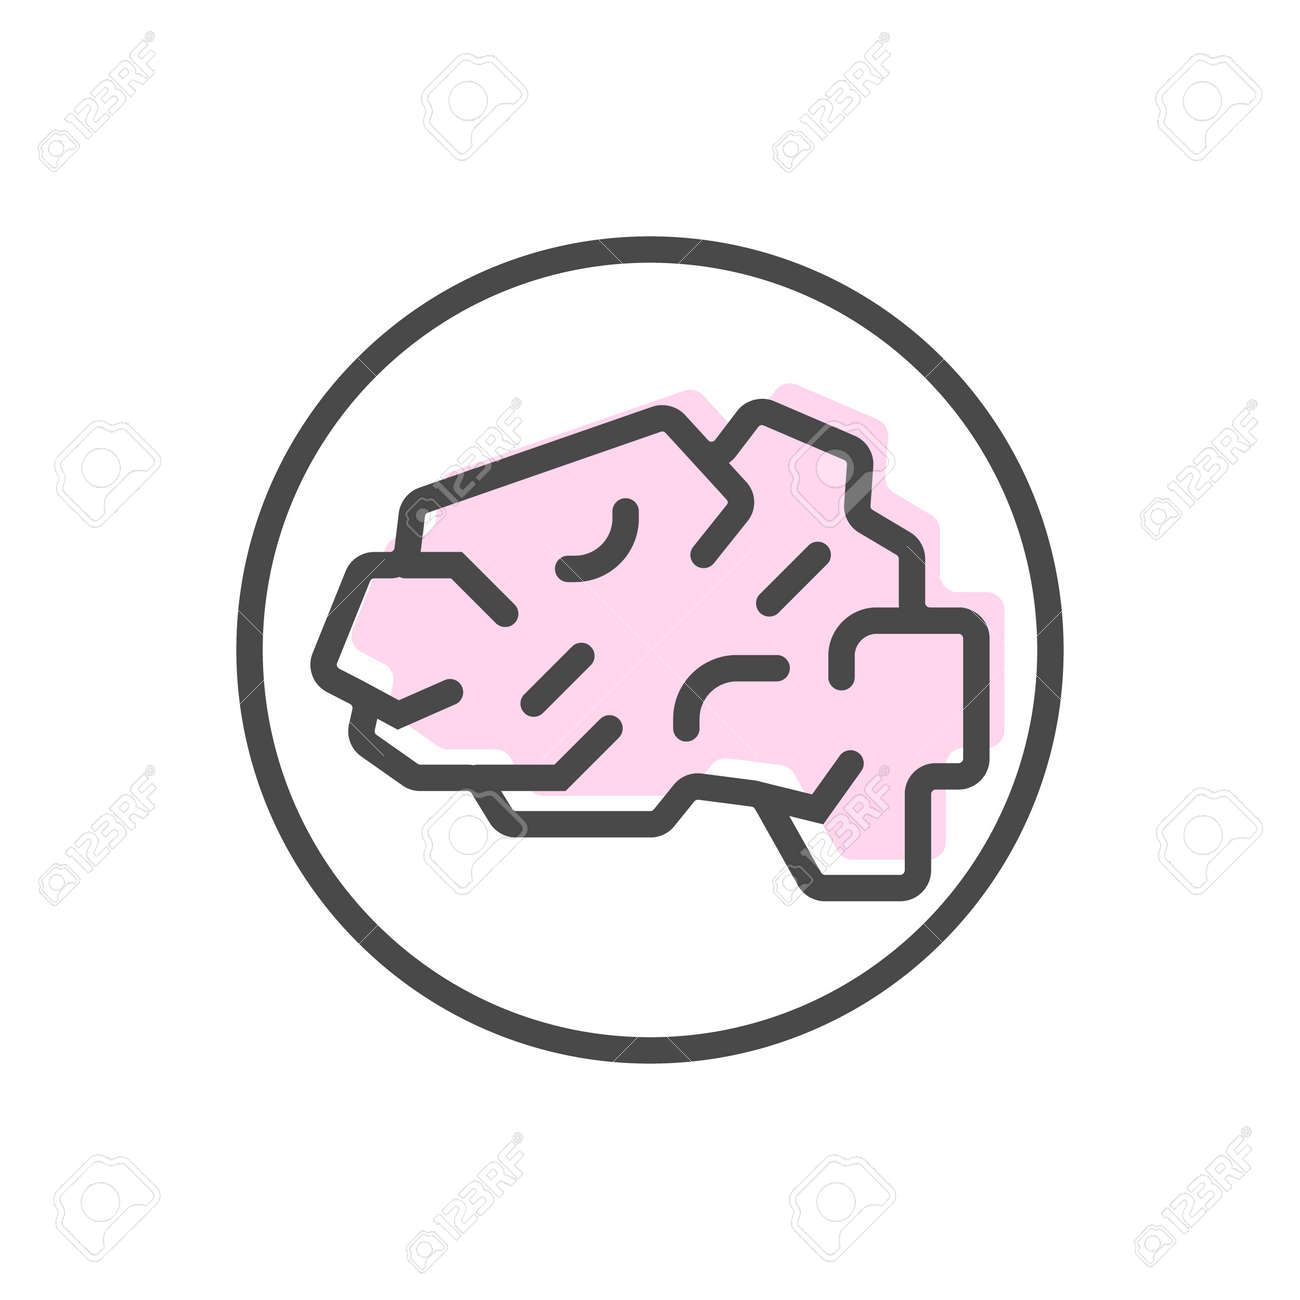 Artificial intelligence icon with brain symbol. Modern cyber linear pictogram, smart new technologies and